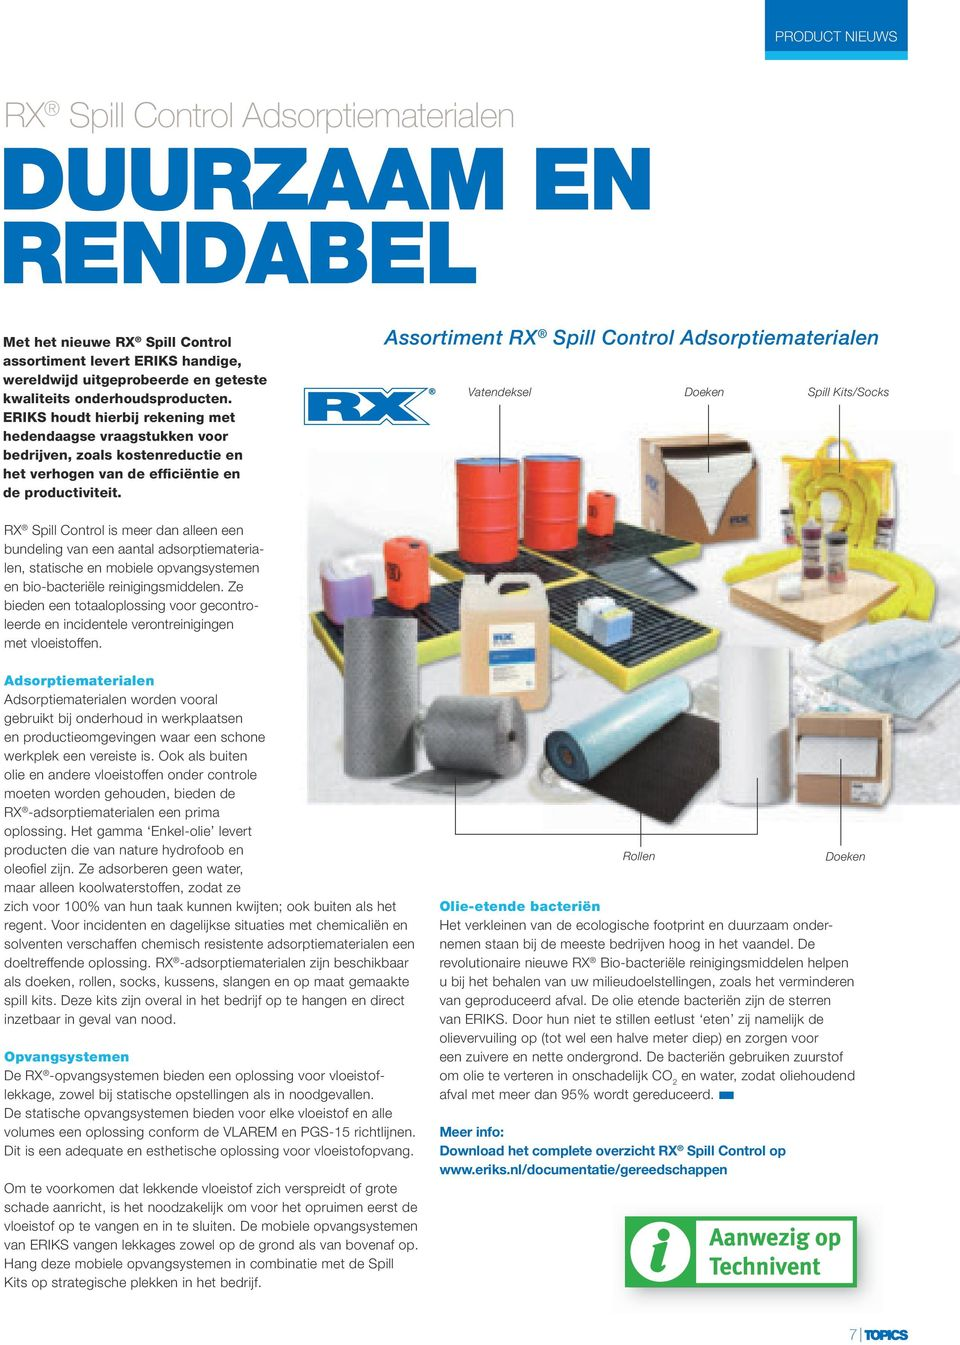 Assortimet RX Spill Cotrol Adsorptiemateriale Vatedeksel Doeke Spill Kits/Socks RX Spill Cotrol is meer da allee ee budelig va ee aatal adsorptiemateriale, statische e mobiele opvagsysteme e